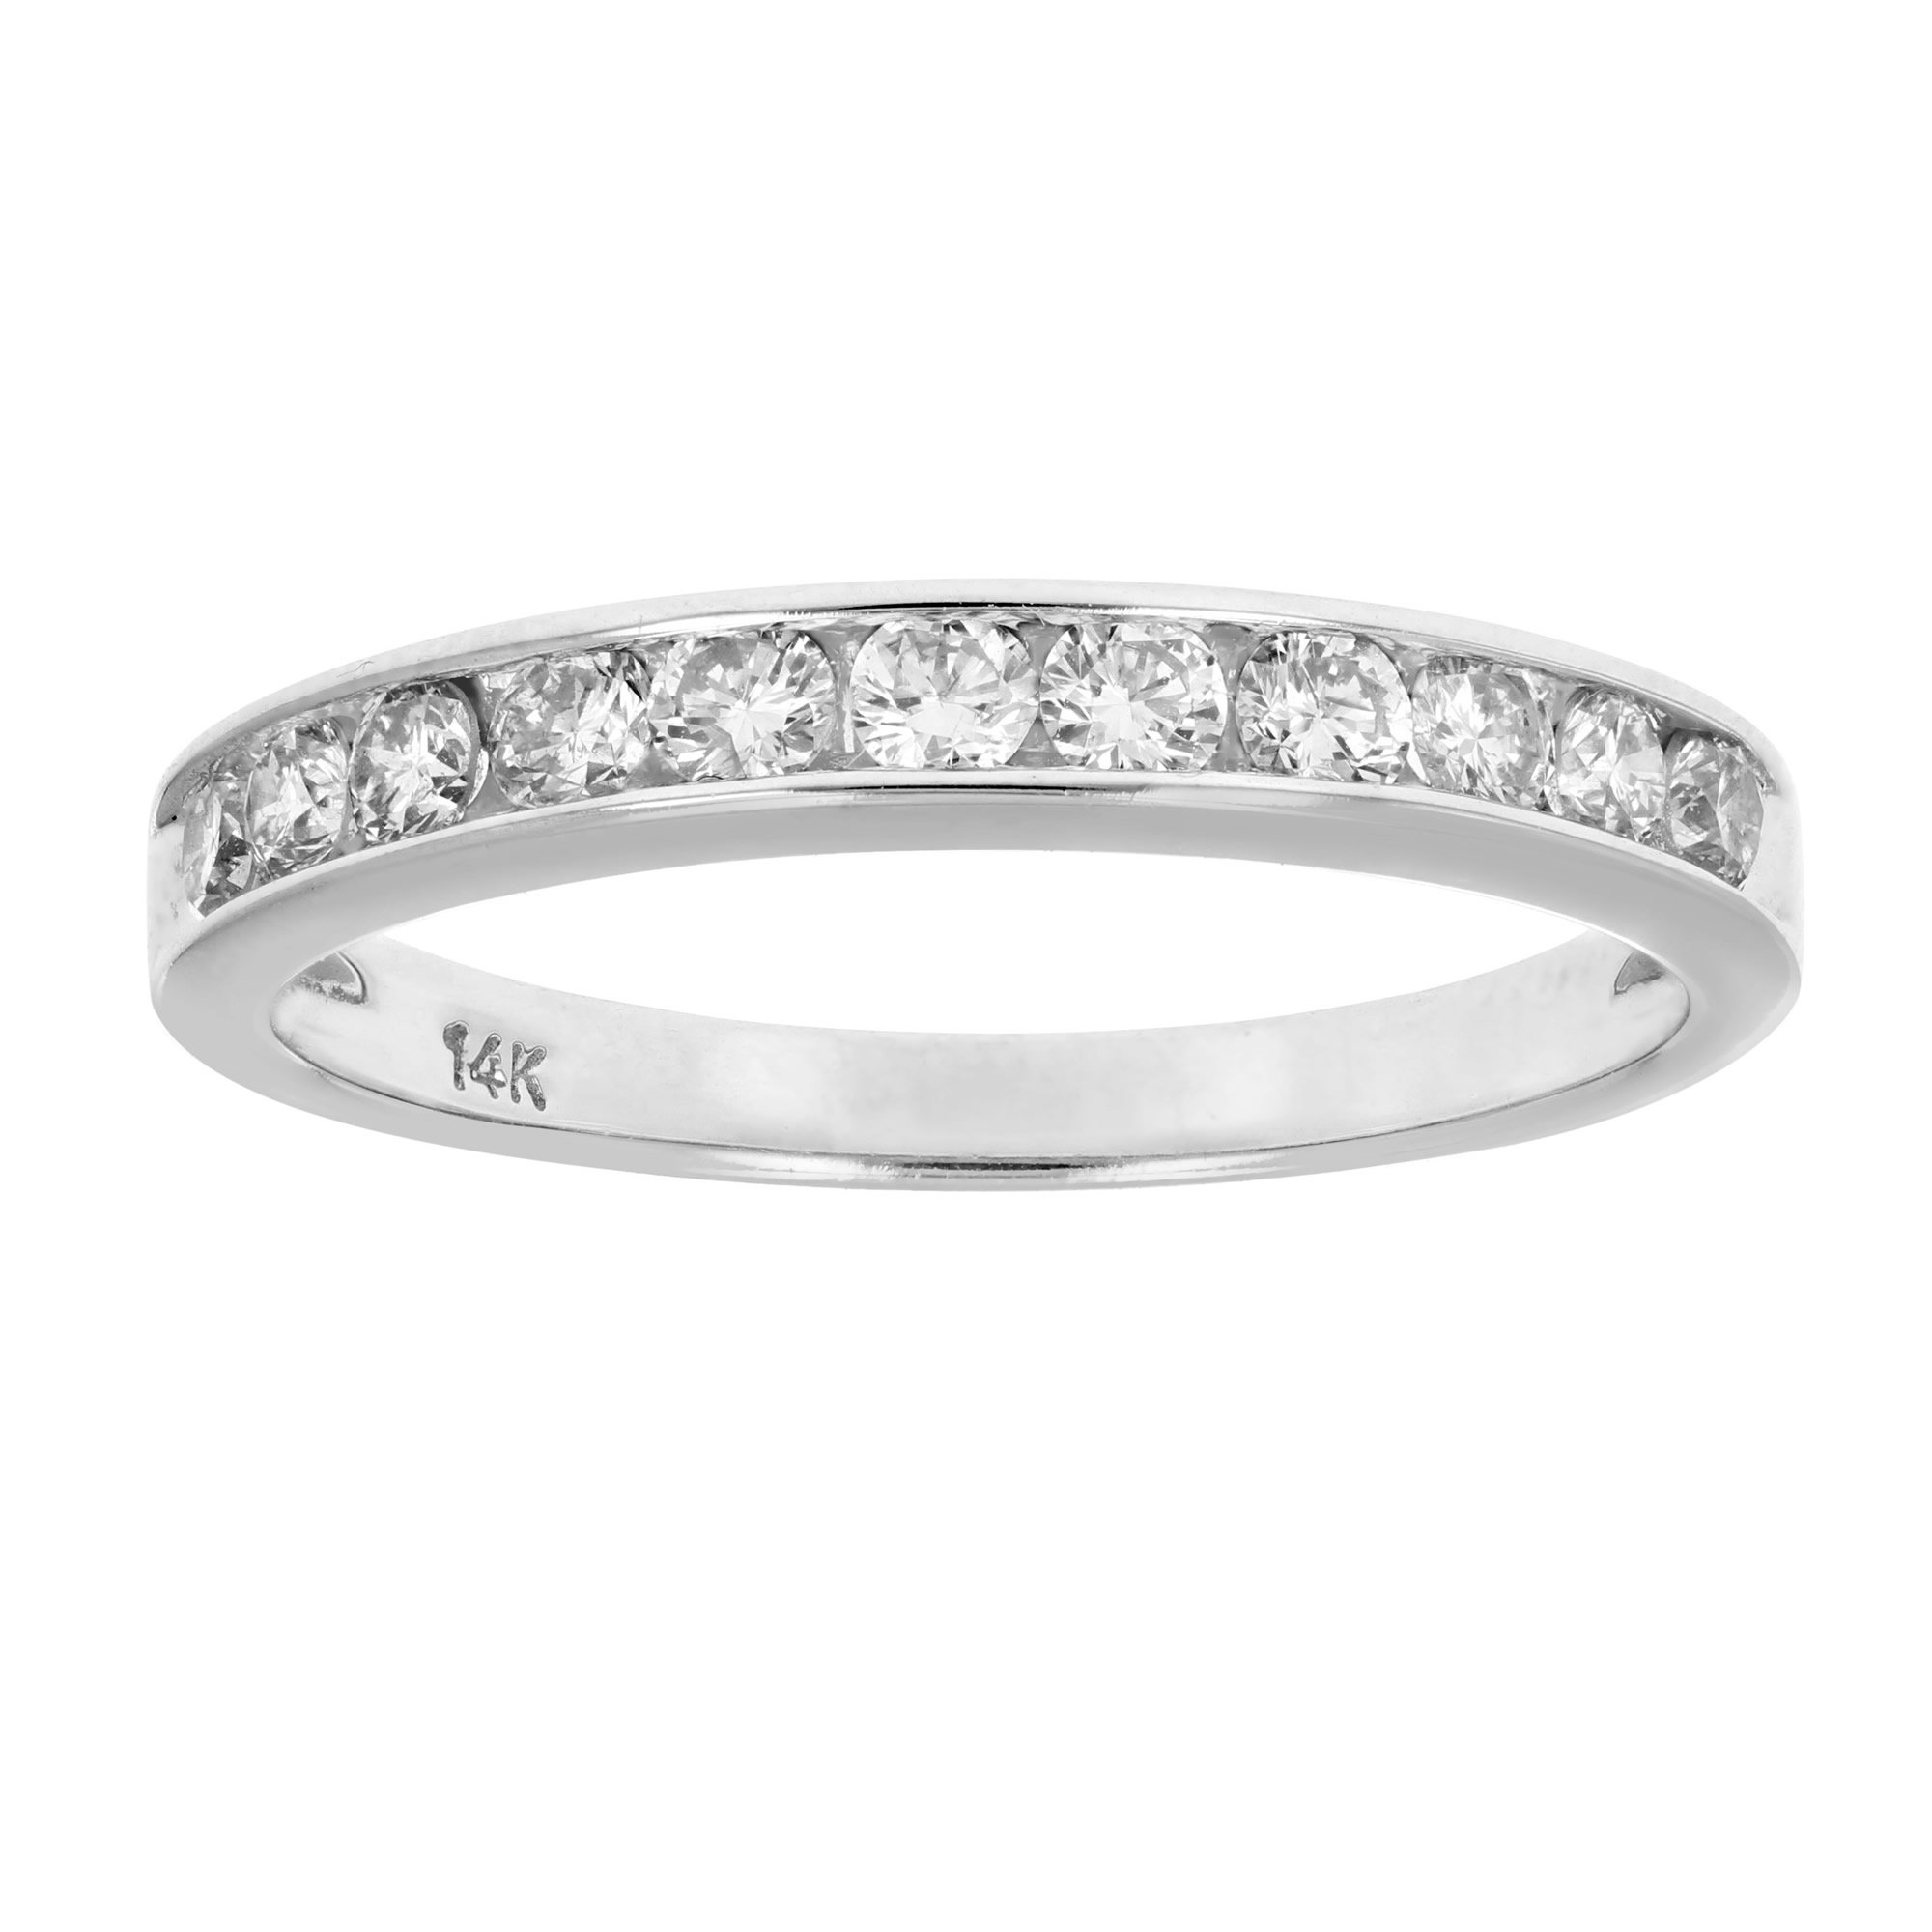 Vir Jewels Certified I1-I2 1/2 cttw Classic Diamond Wedding Band 14K White Gold Channel Size 5